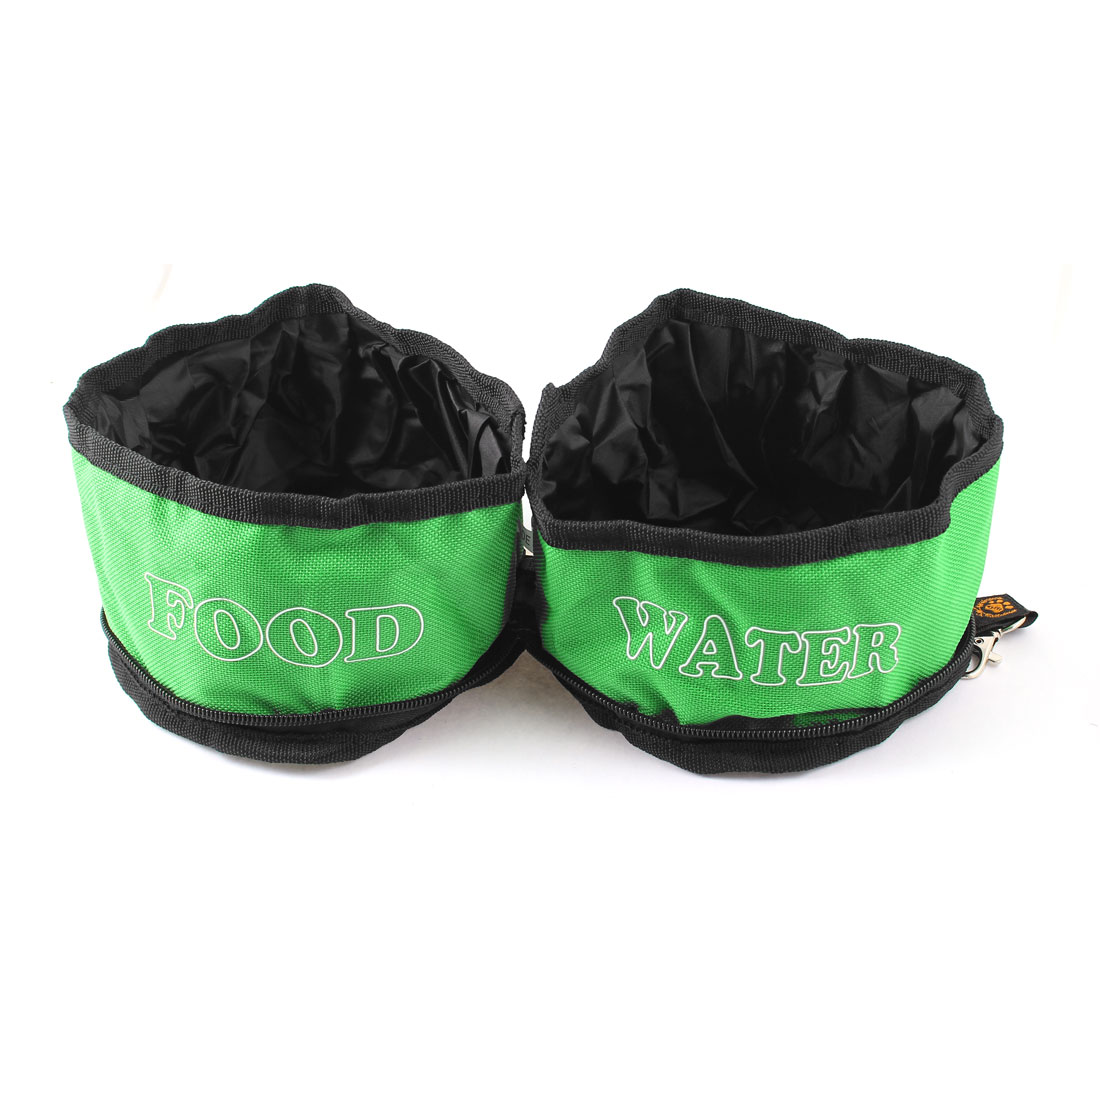 Traveling Camping Hiking Travel Green Black Letter Pattern Double Food Water Bowl for Pet Doggie Cat